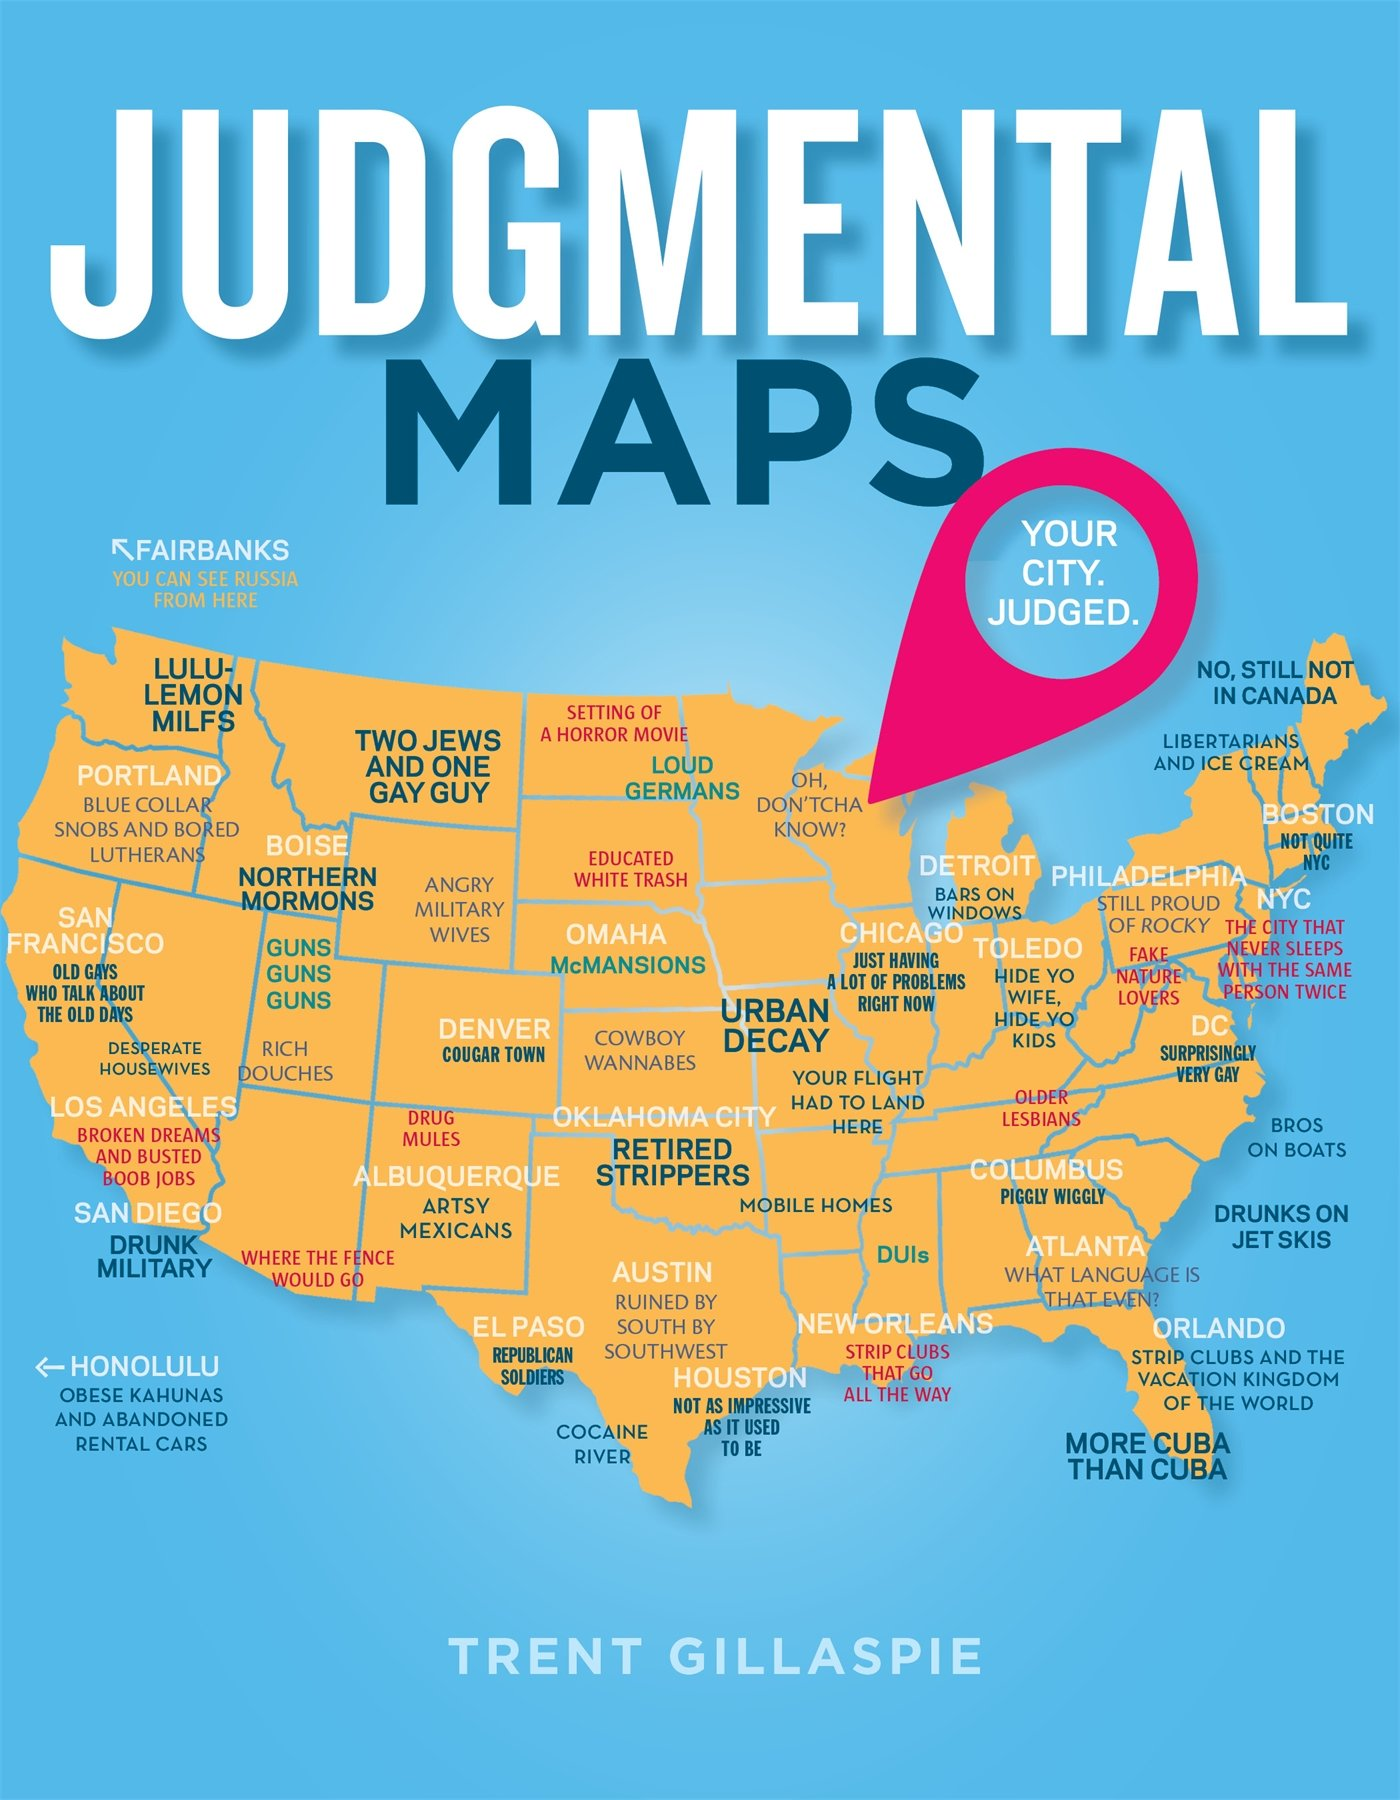 Judgemental Map Of The Us Judgmental Maps: Your City. Judged.: Gillaspie, Trent